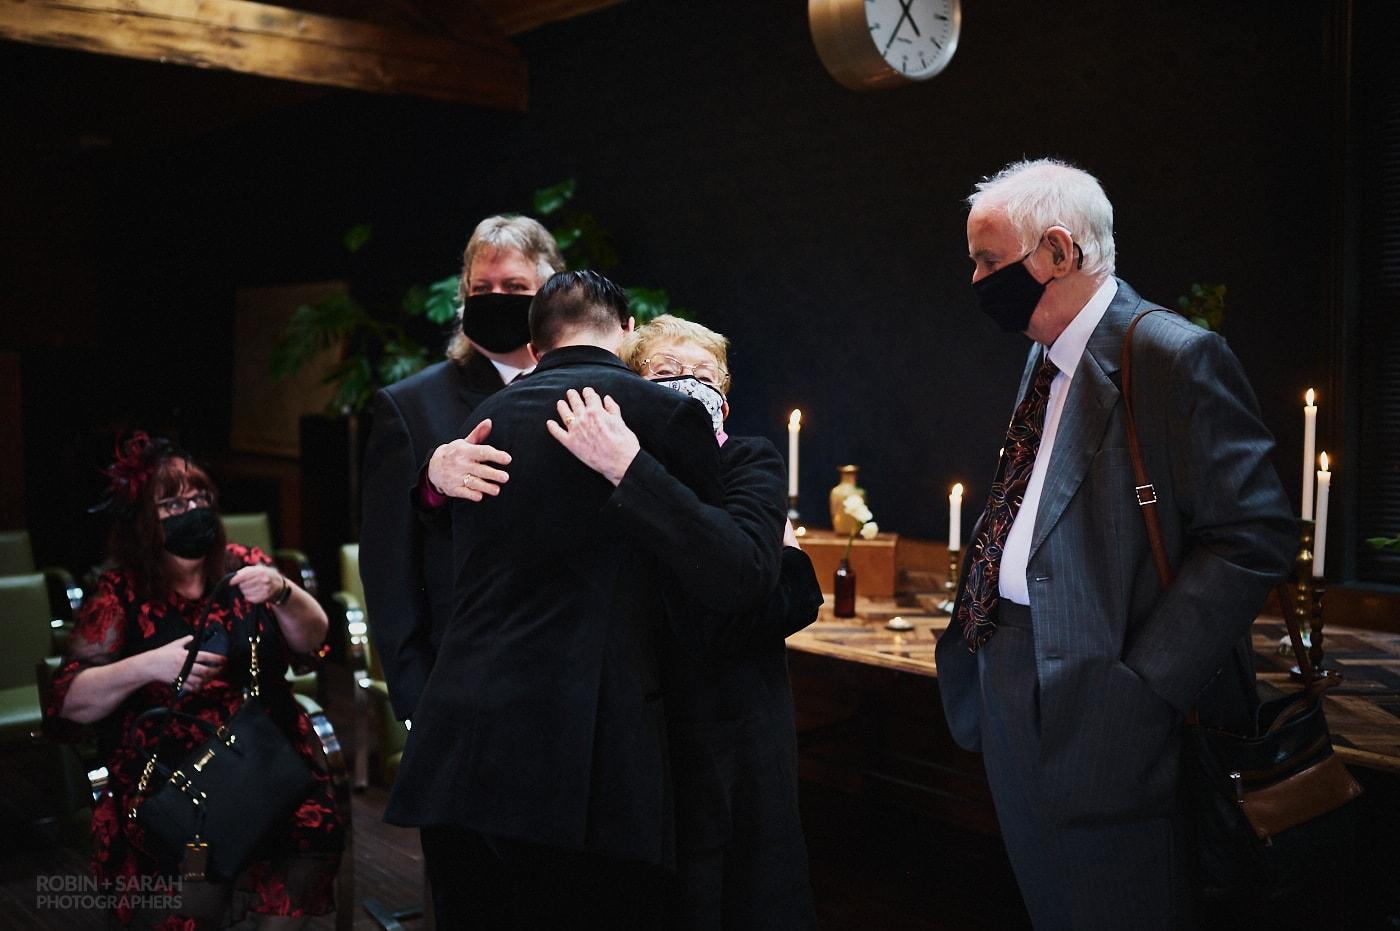 Wedding guest hugs groom after ceremony at The Chimney House